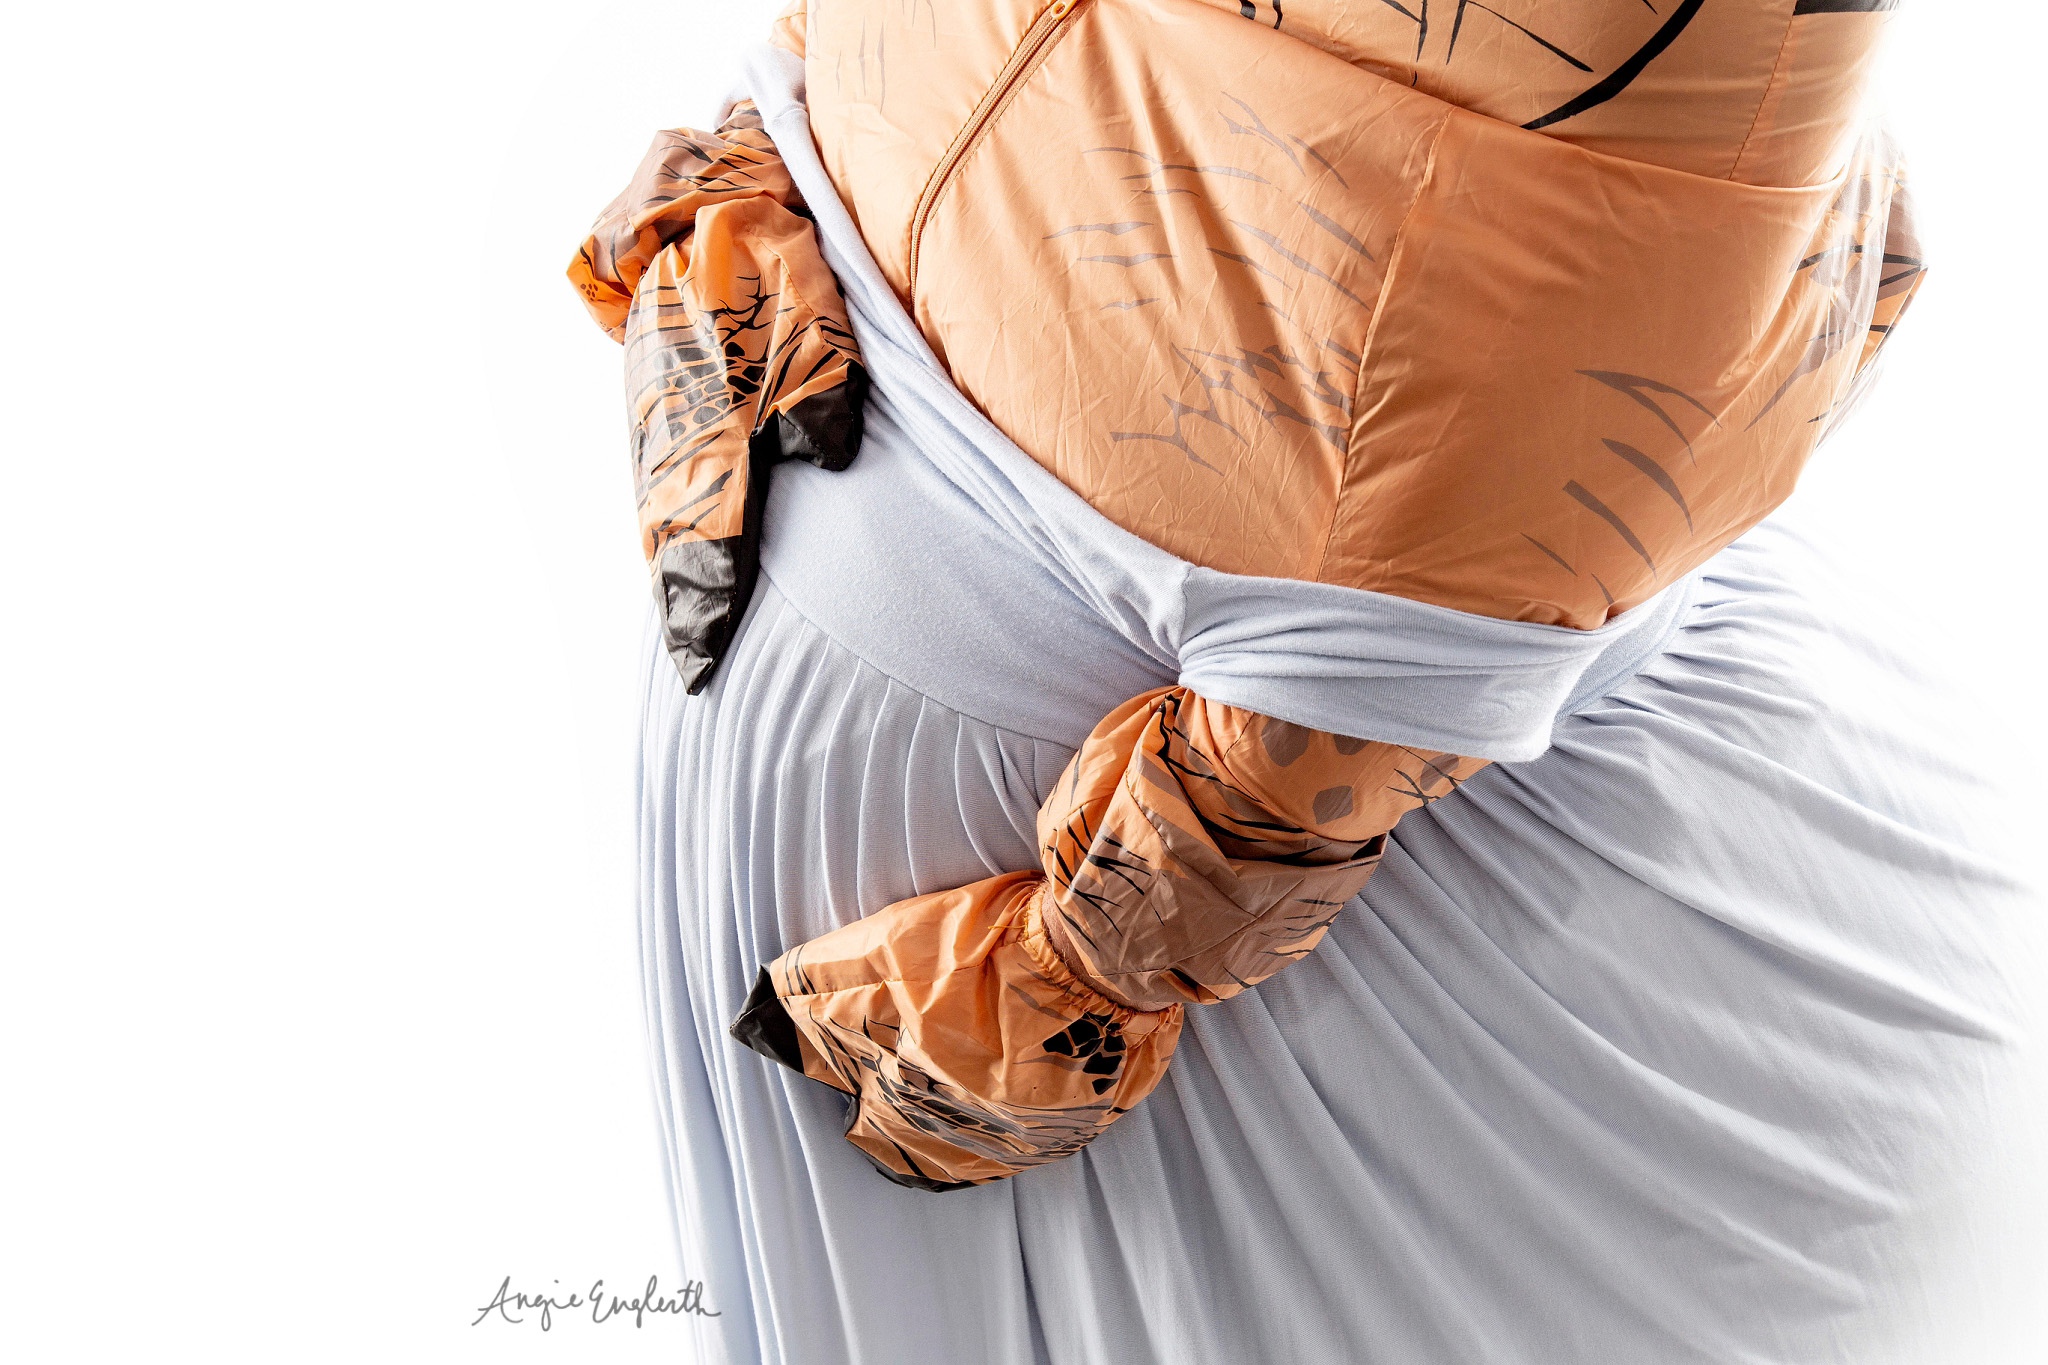 lancaster_newborn_and_maternity_photographer_angie_englerth_central_pa_b019.jpg